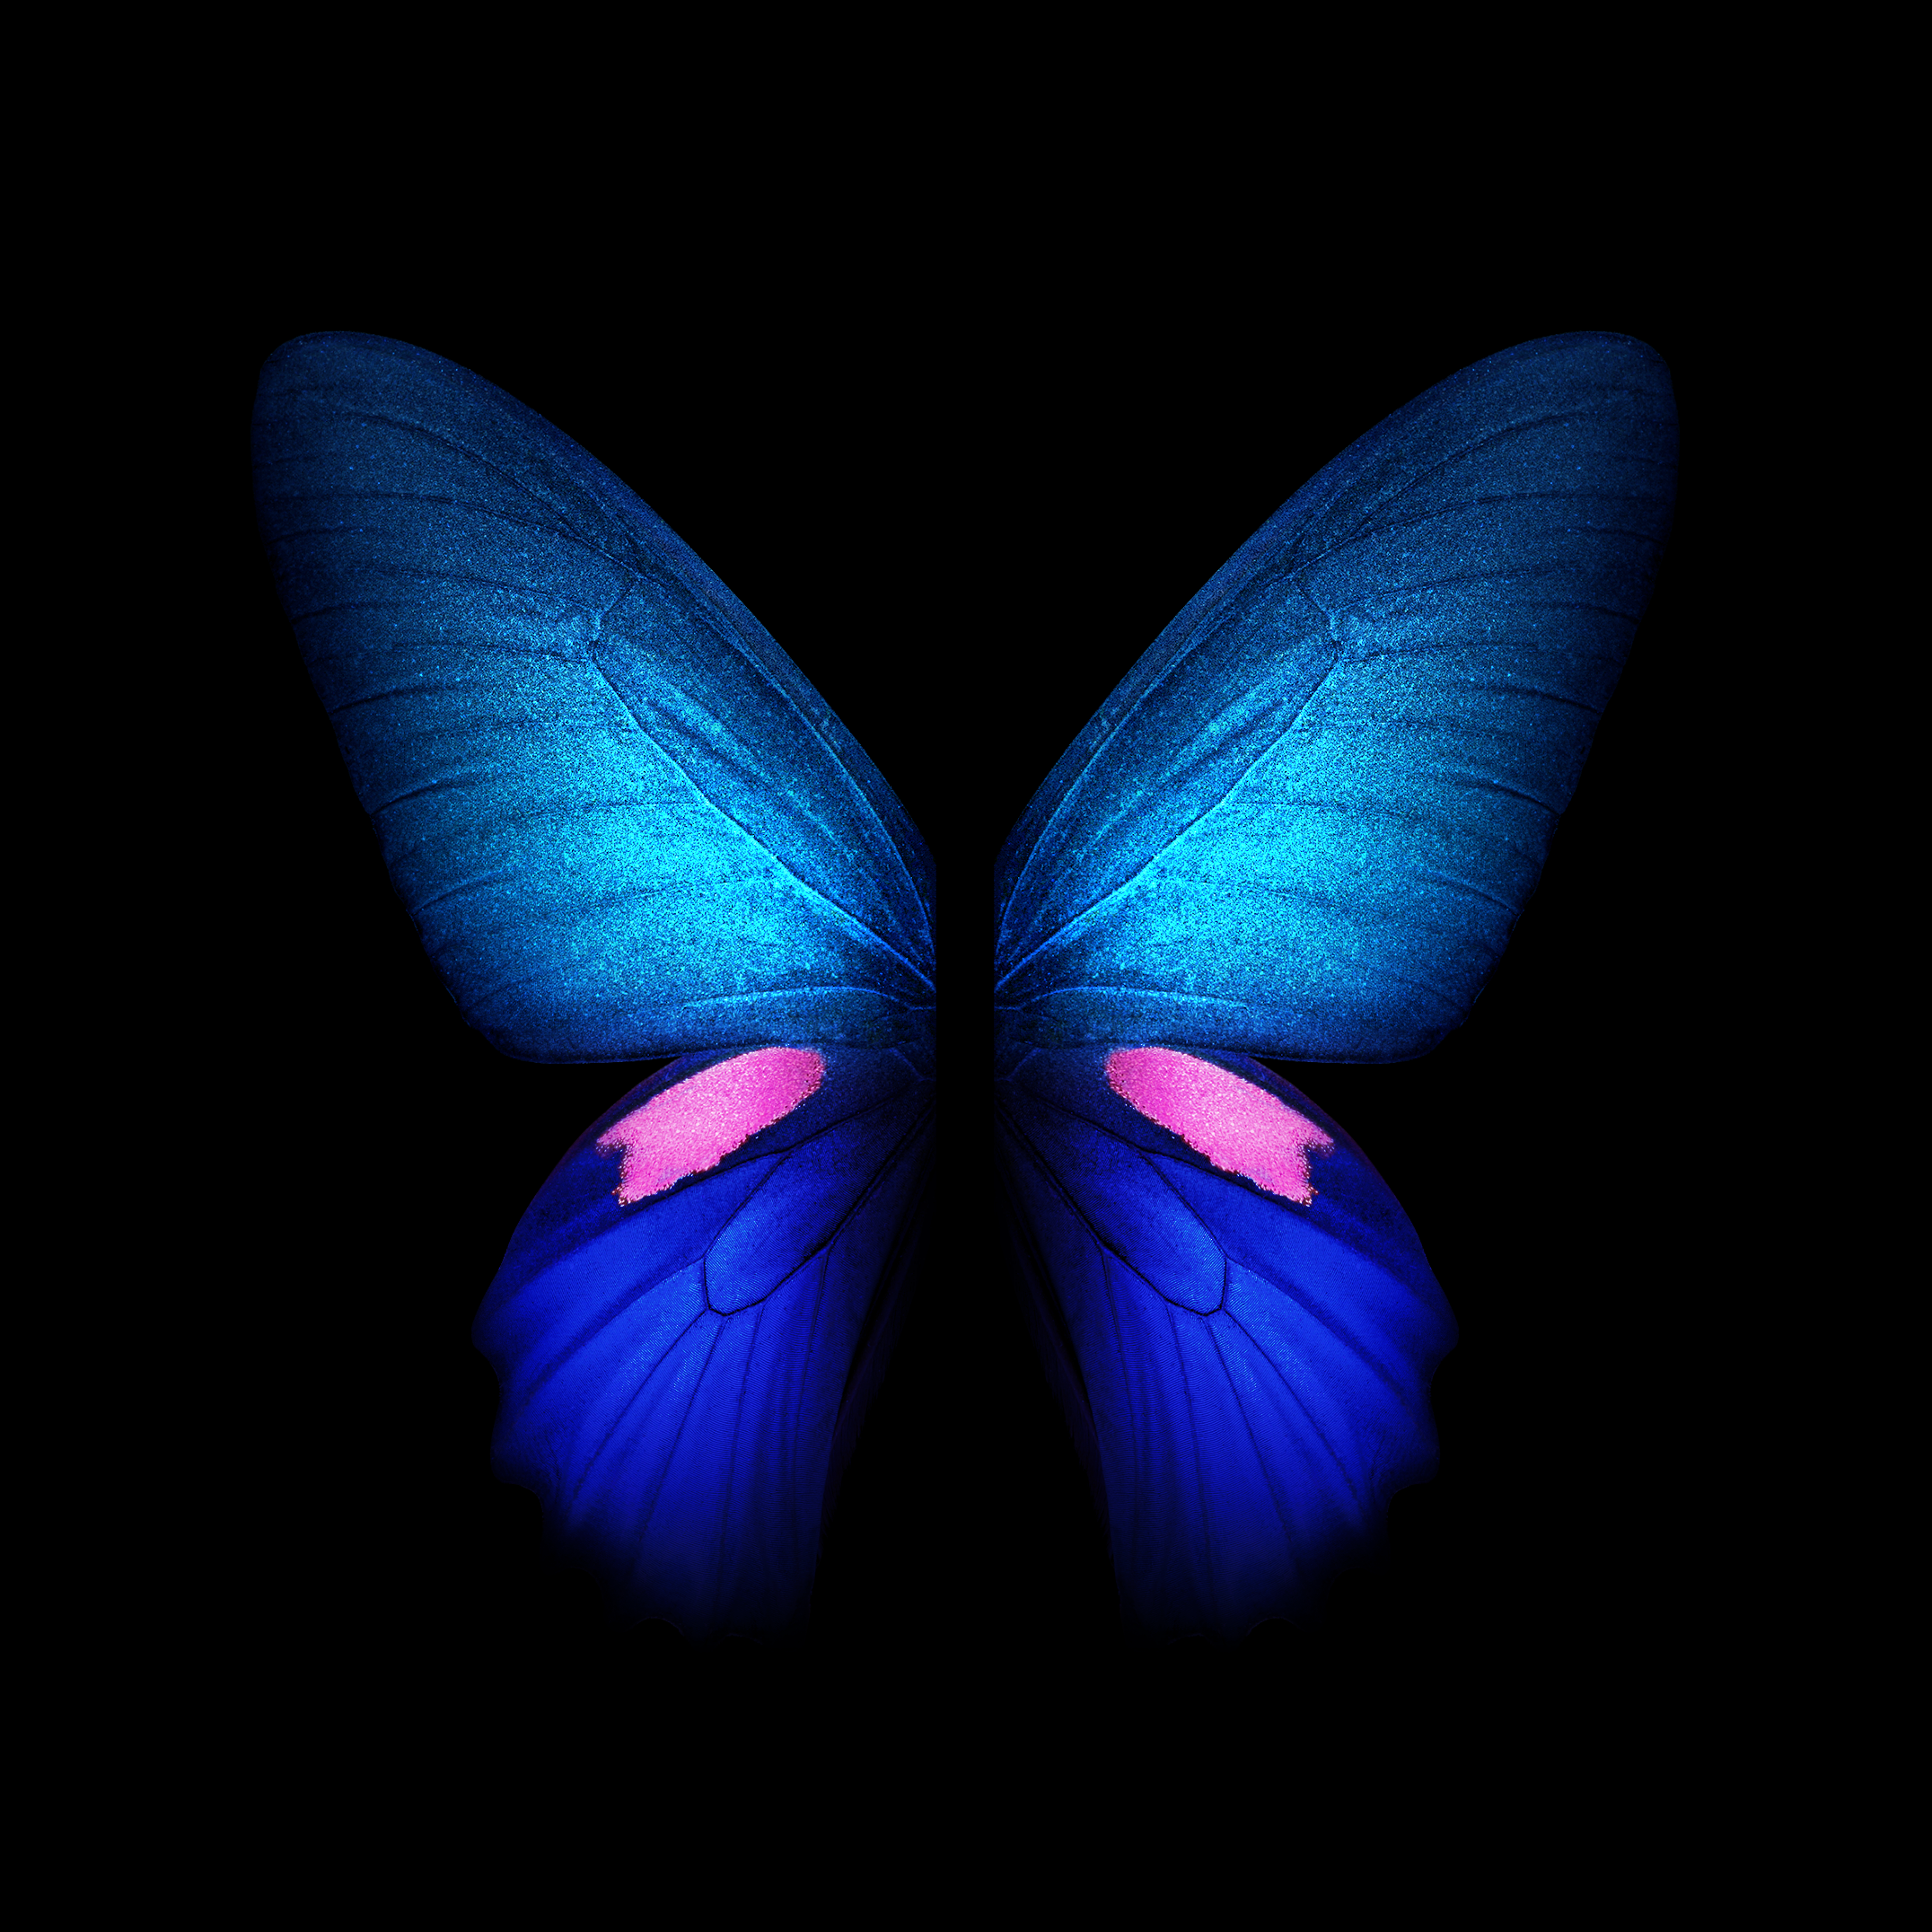 Samsung Galaxy Fold Full Album Live wallpaper Link in comments 2152x2152